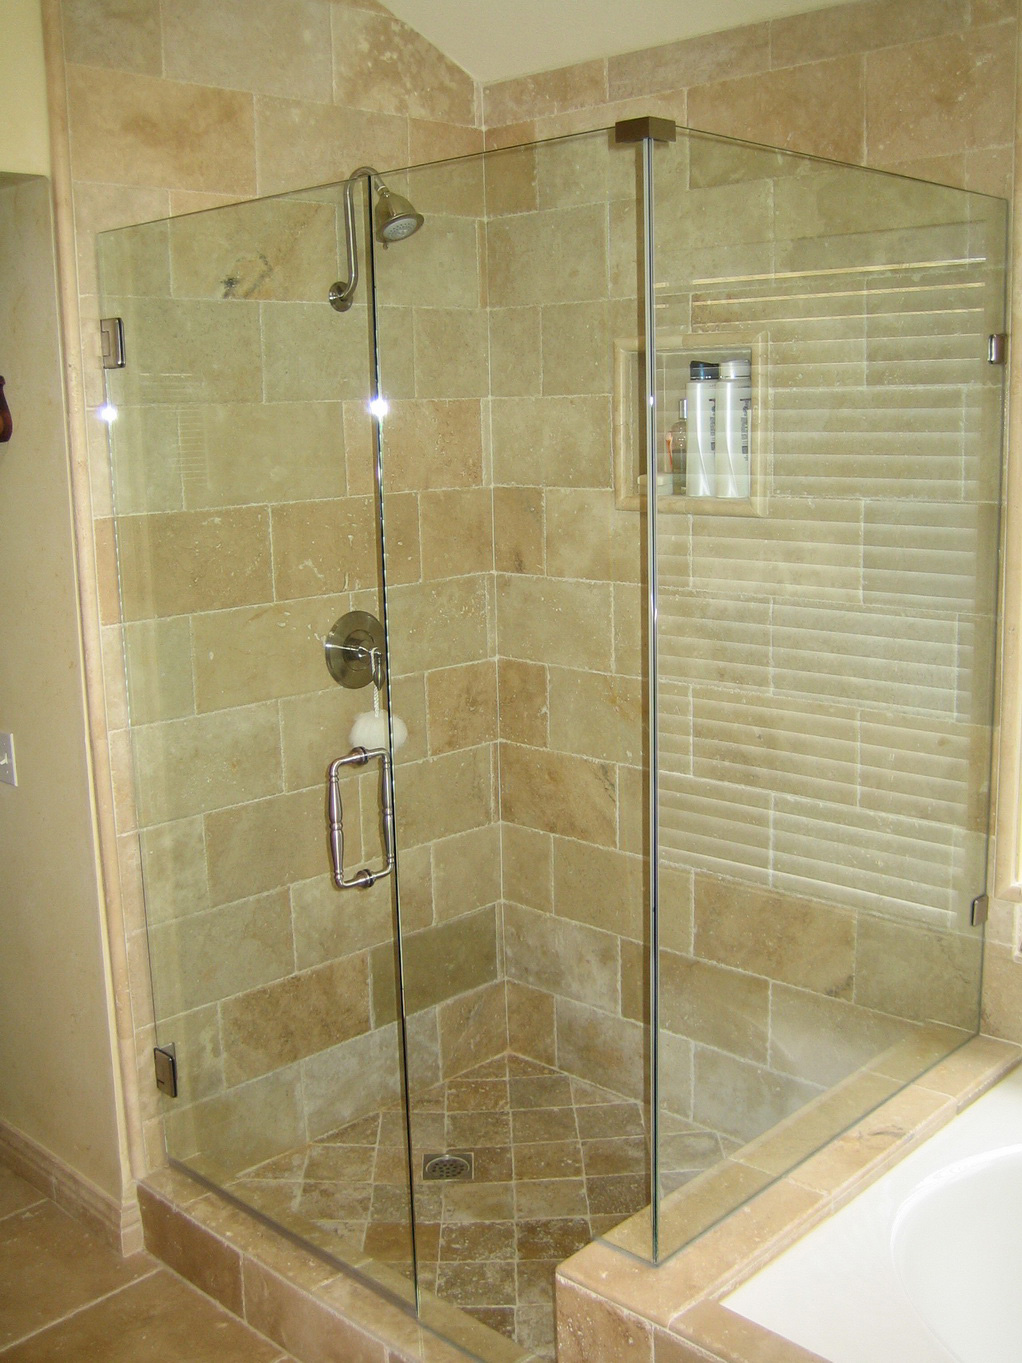 Bathroom shower doors frameless - Interior Glamorous Bathroom Sliding Shower